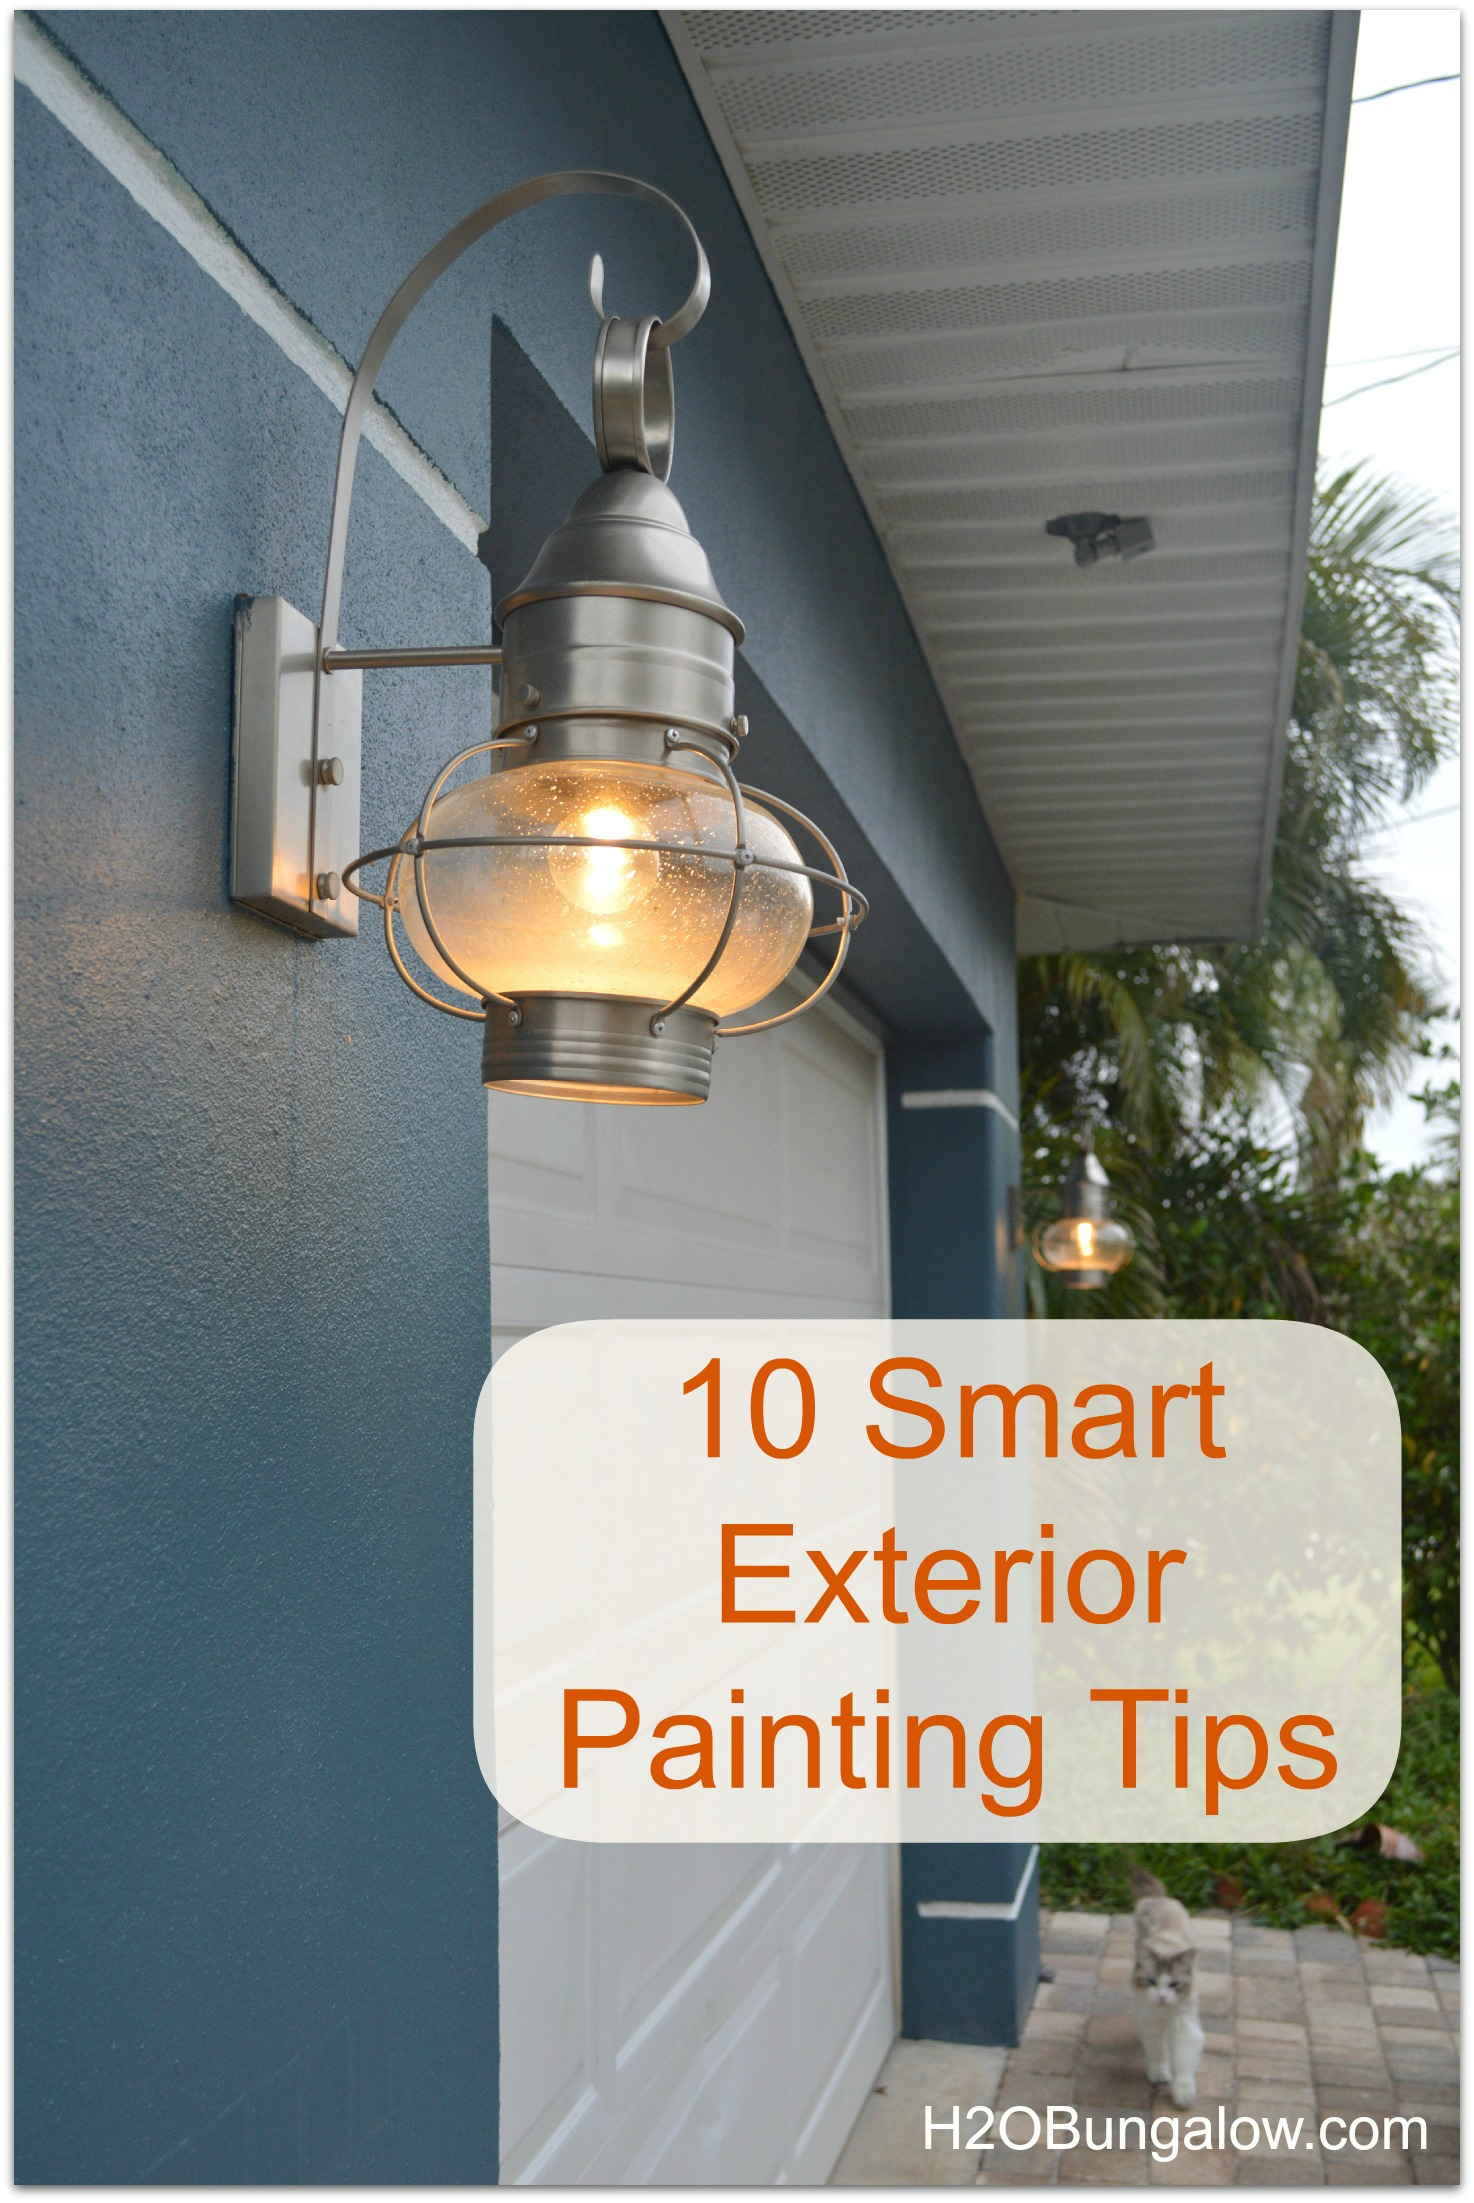 these 10 smart exterior painting tips will save you valuable time and